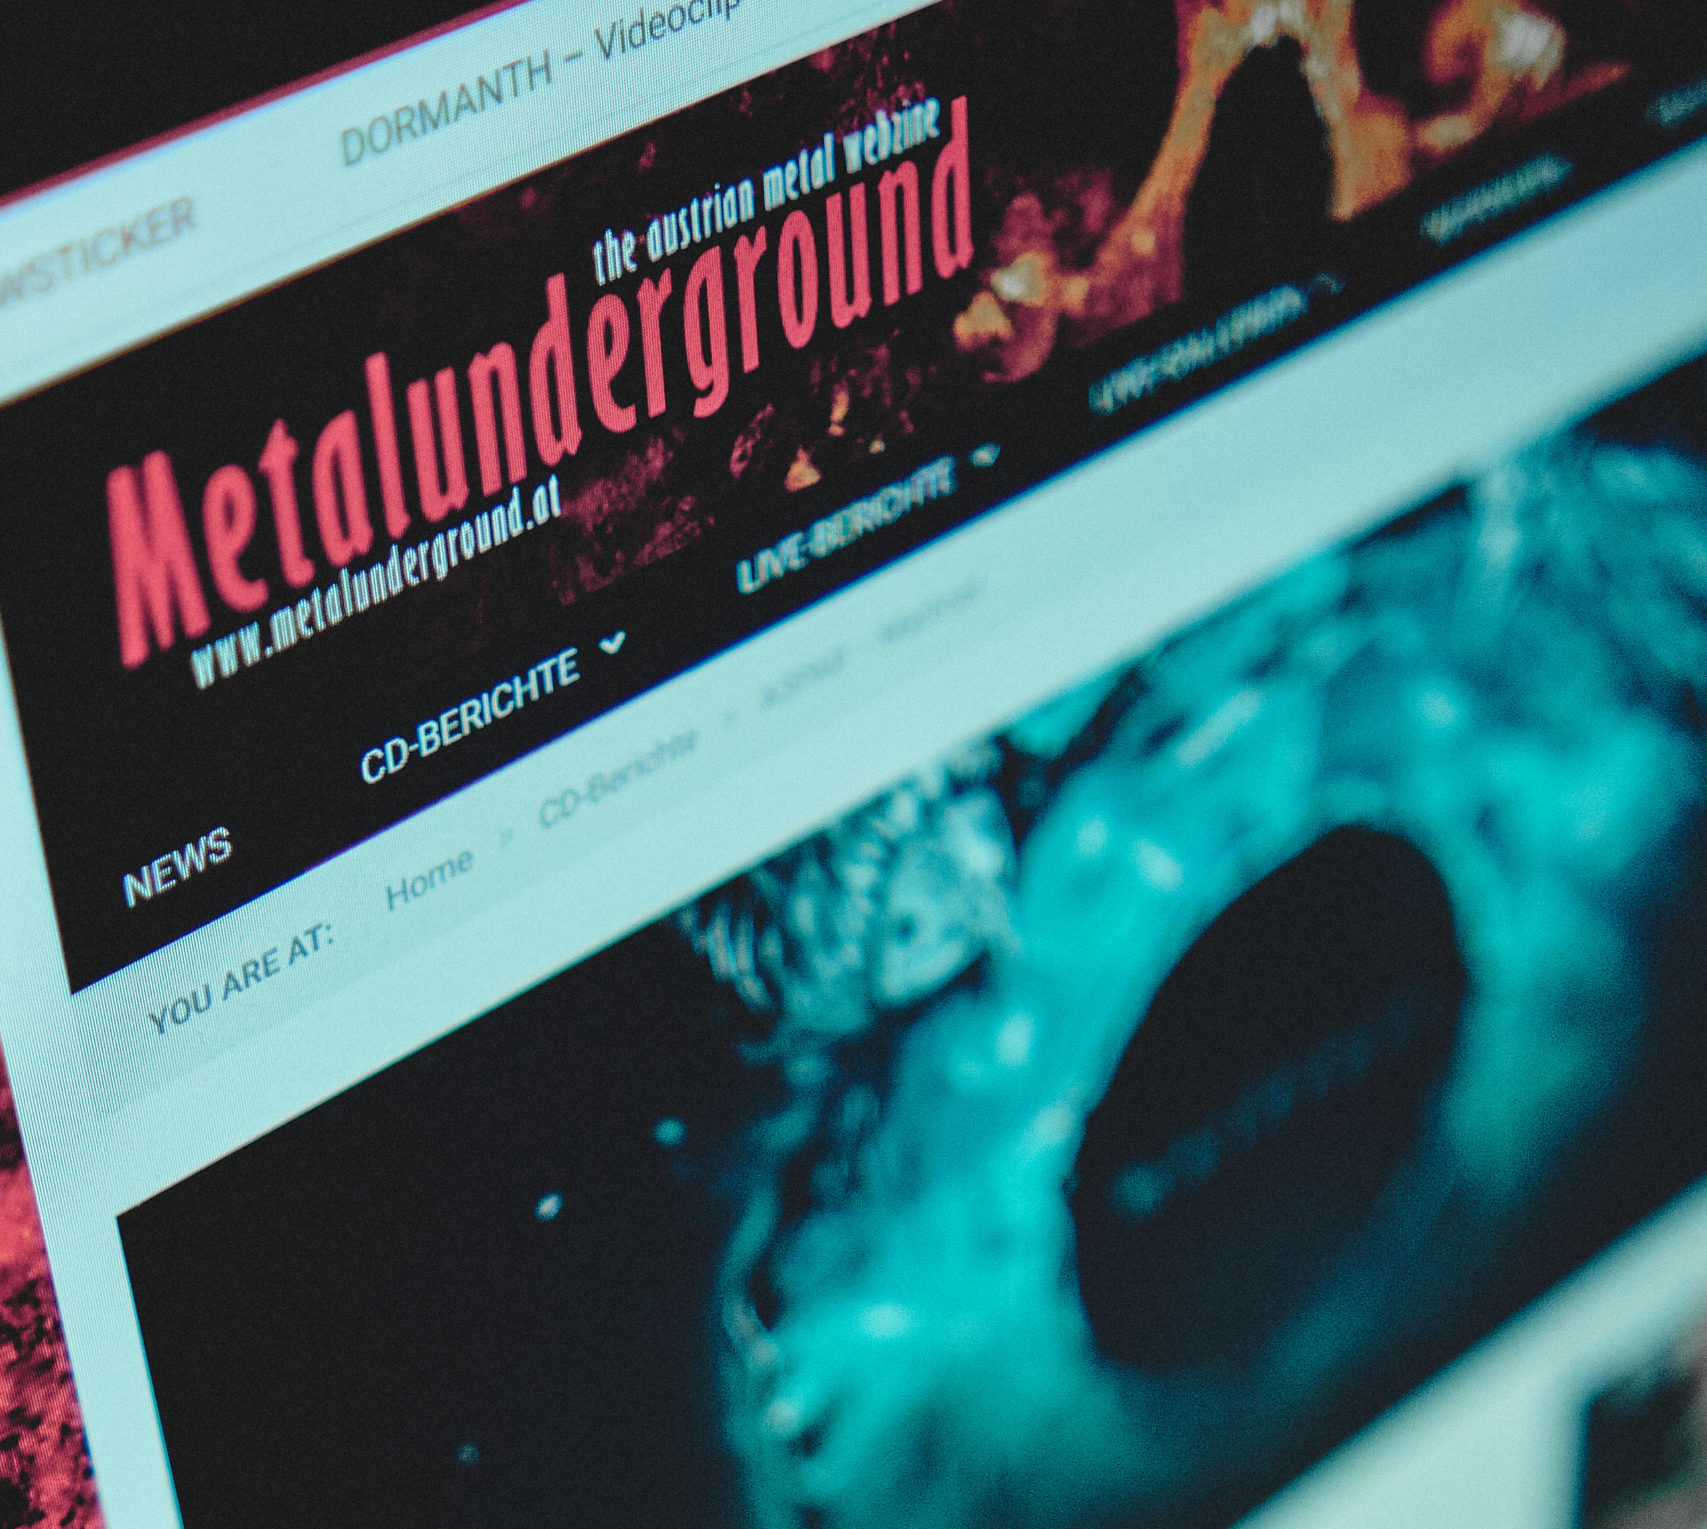 METALUNDERGROUND.AT – Review Online!